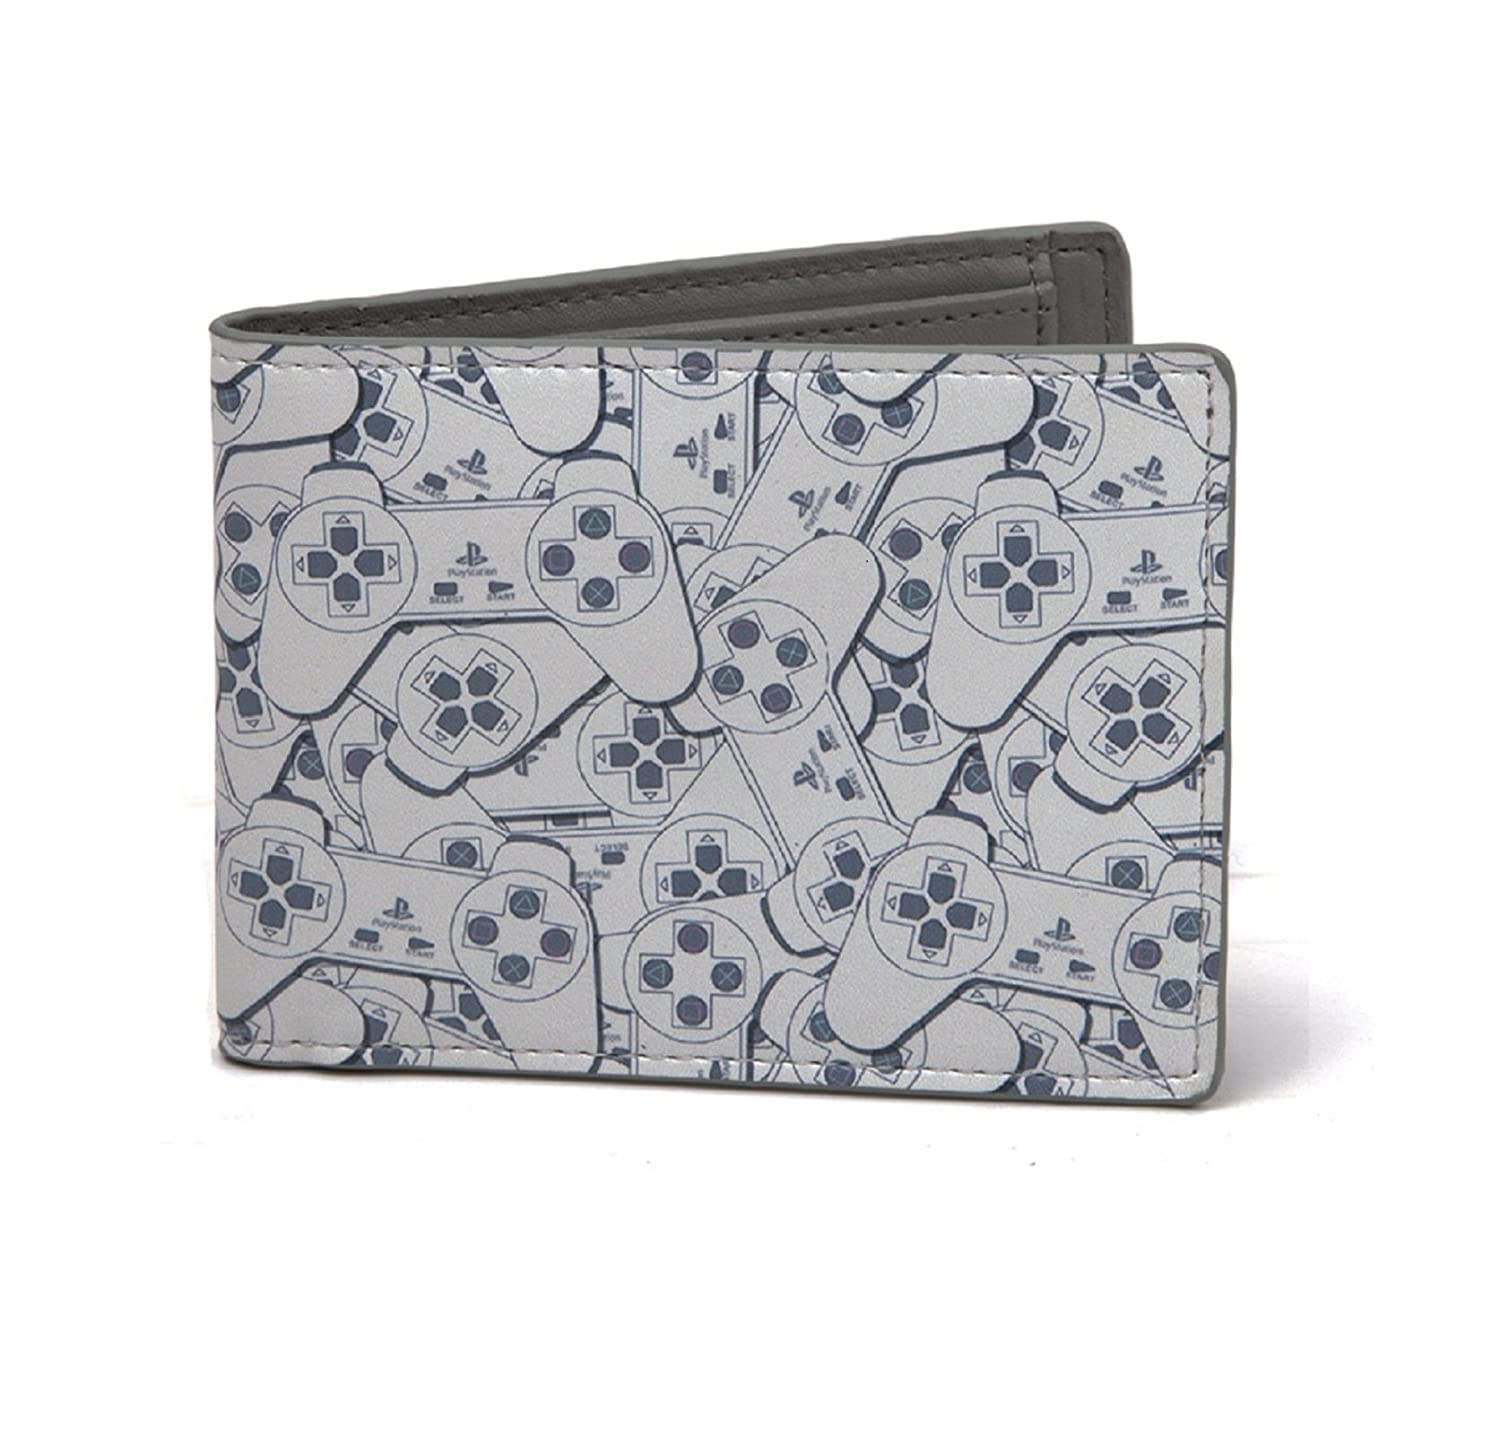 Playstation PS1 Controller all over print Official New Grey Bifold Wallet